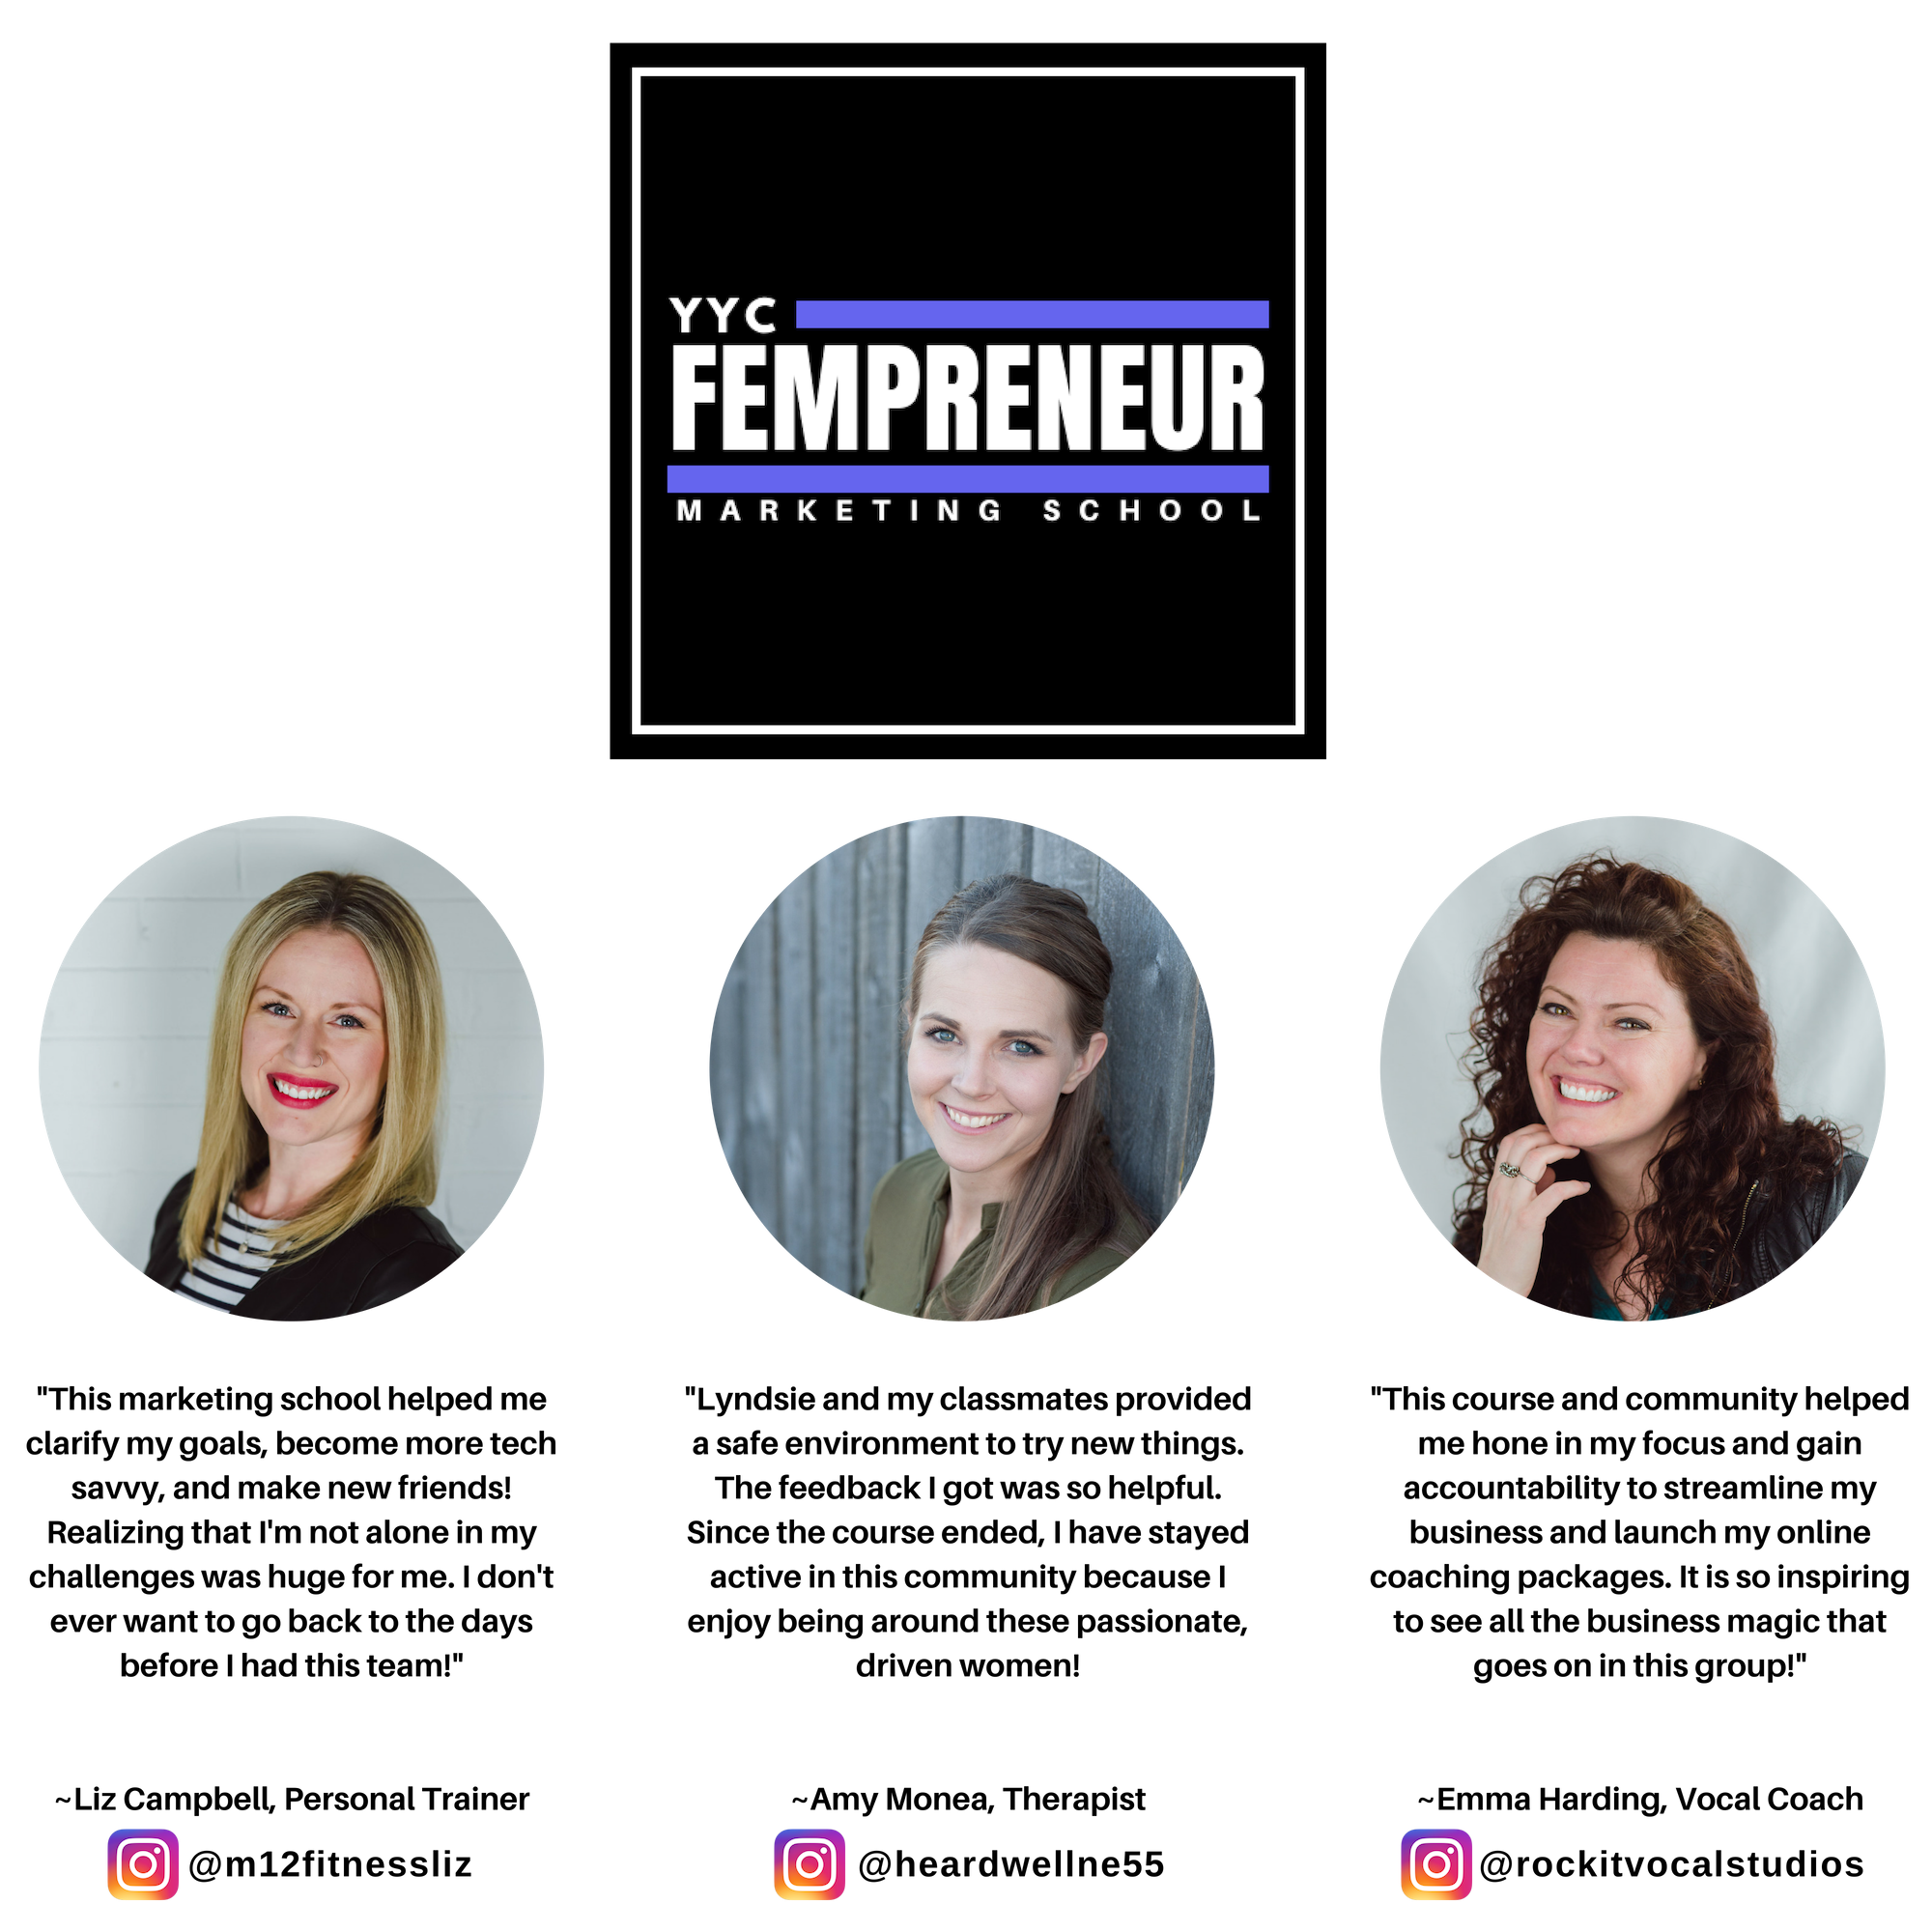 Copy of yycfempreneur.com.png